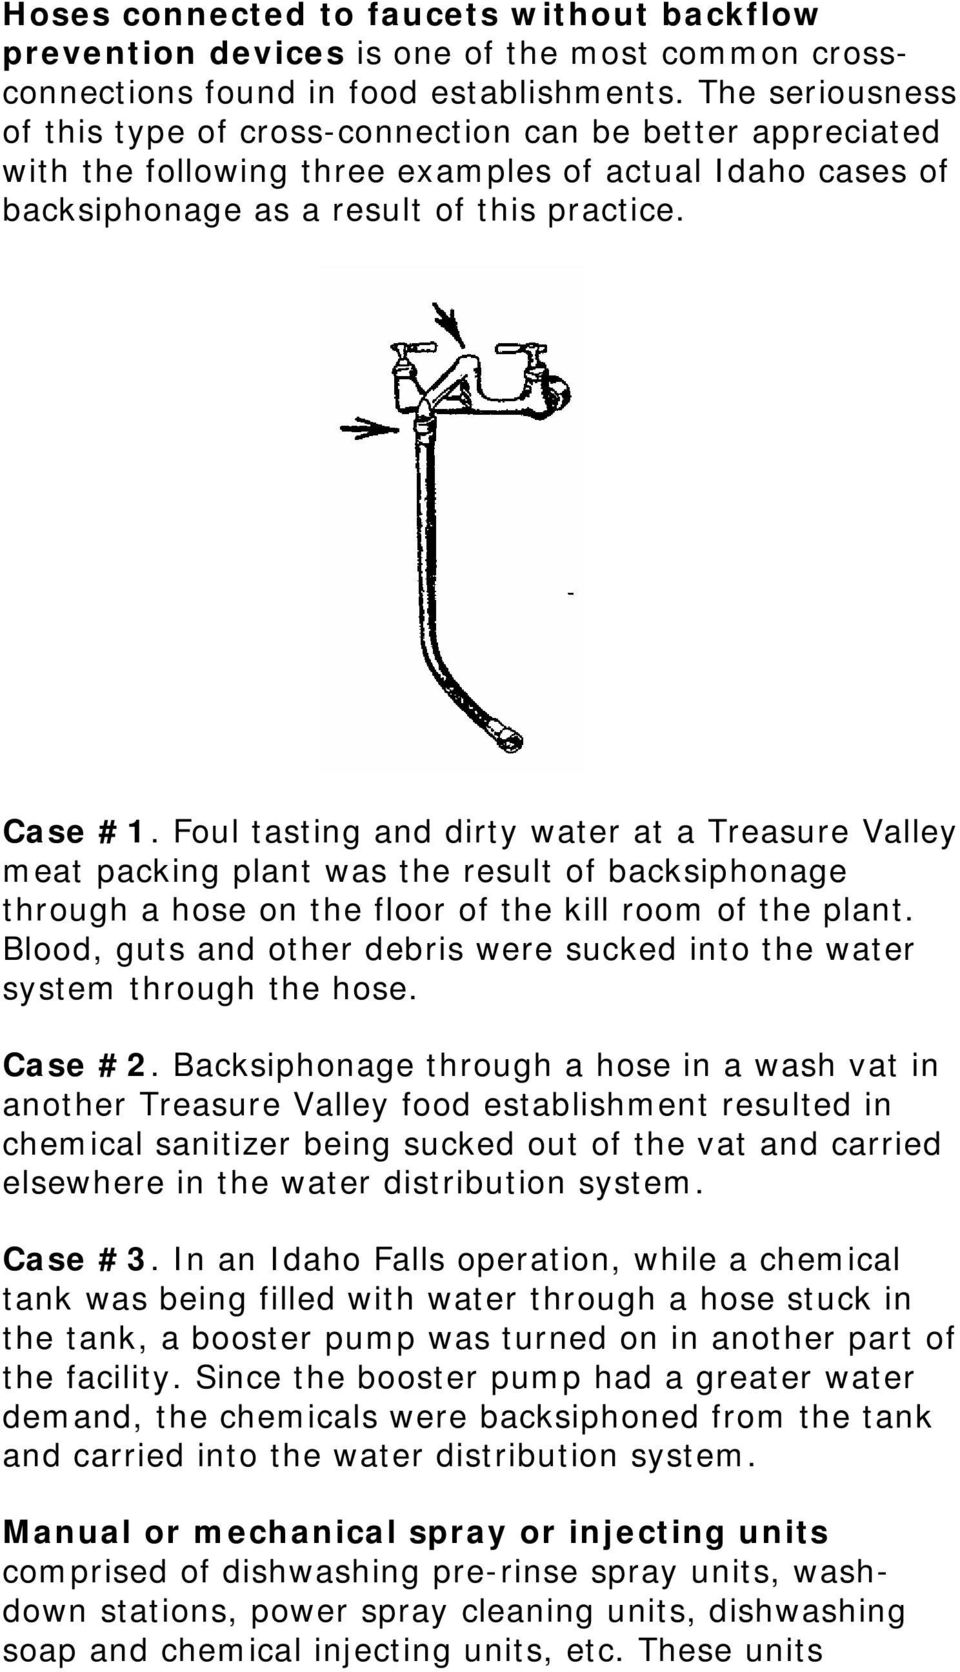 Foul tasting and dirty water at a Treasure Valley meat packing plant was the result of backsiphonage through a hose on the floor of the kill room of the plant.